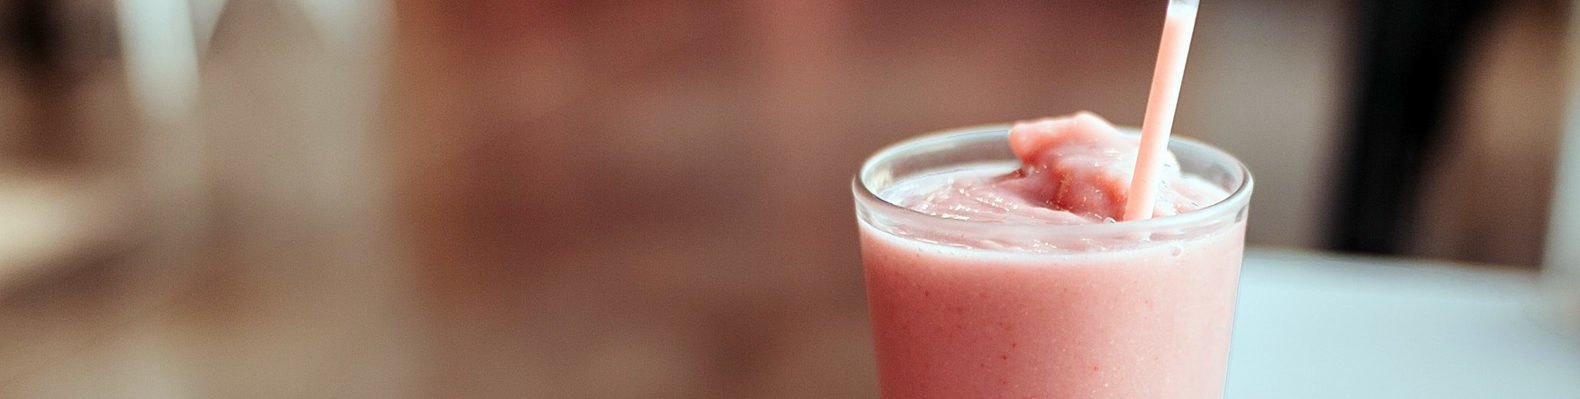 cropped close-up of strawberry milkshake in glass cup with plastic straw on a table